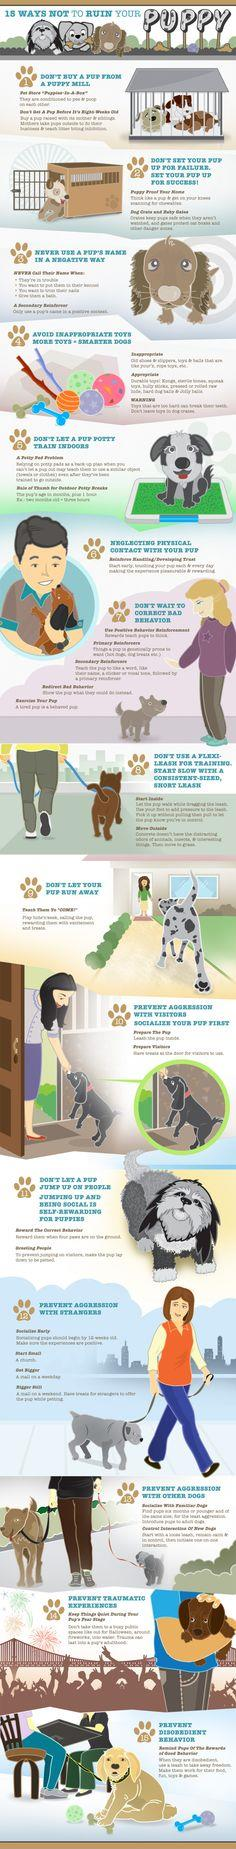 Train your puppy right!